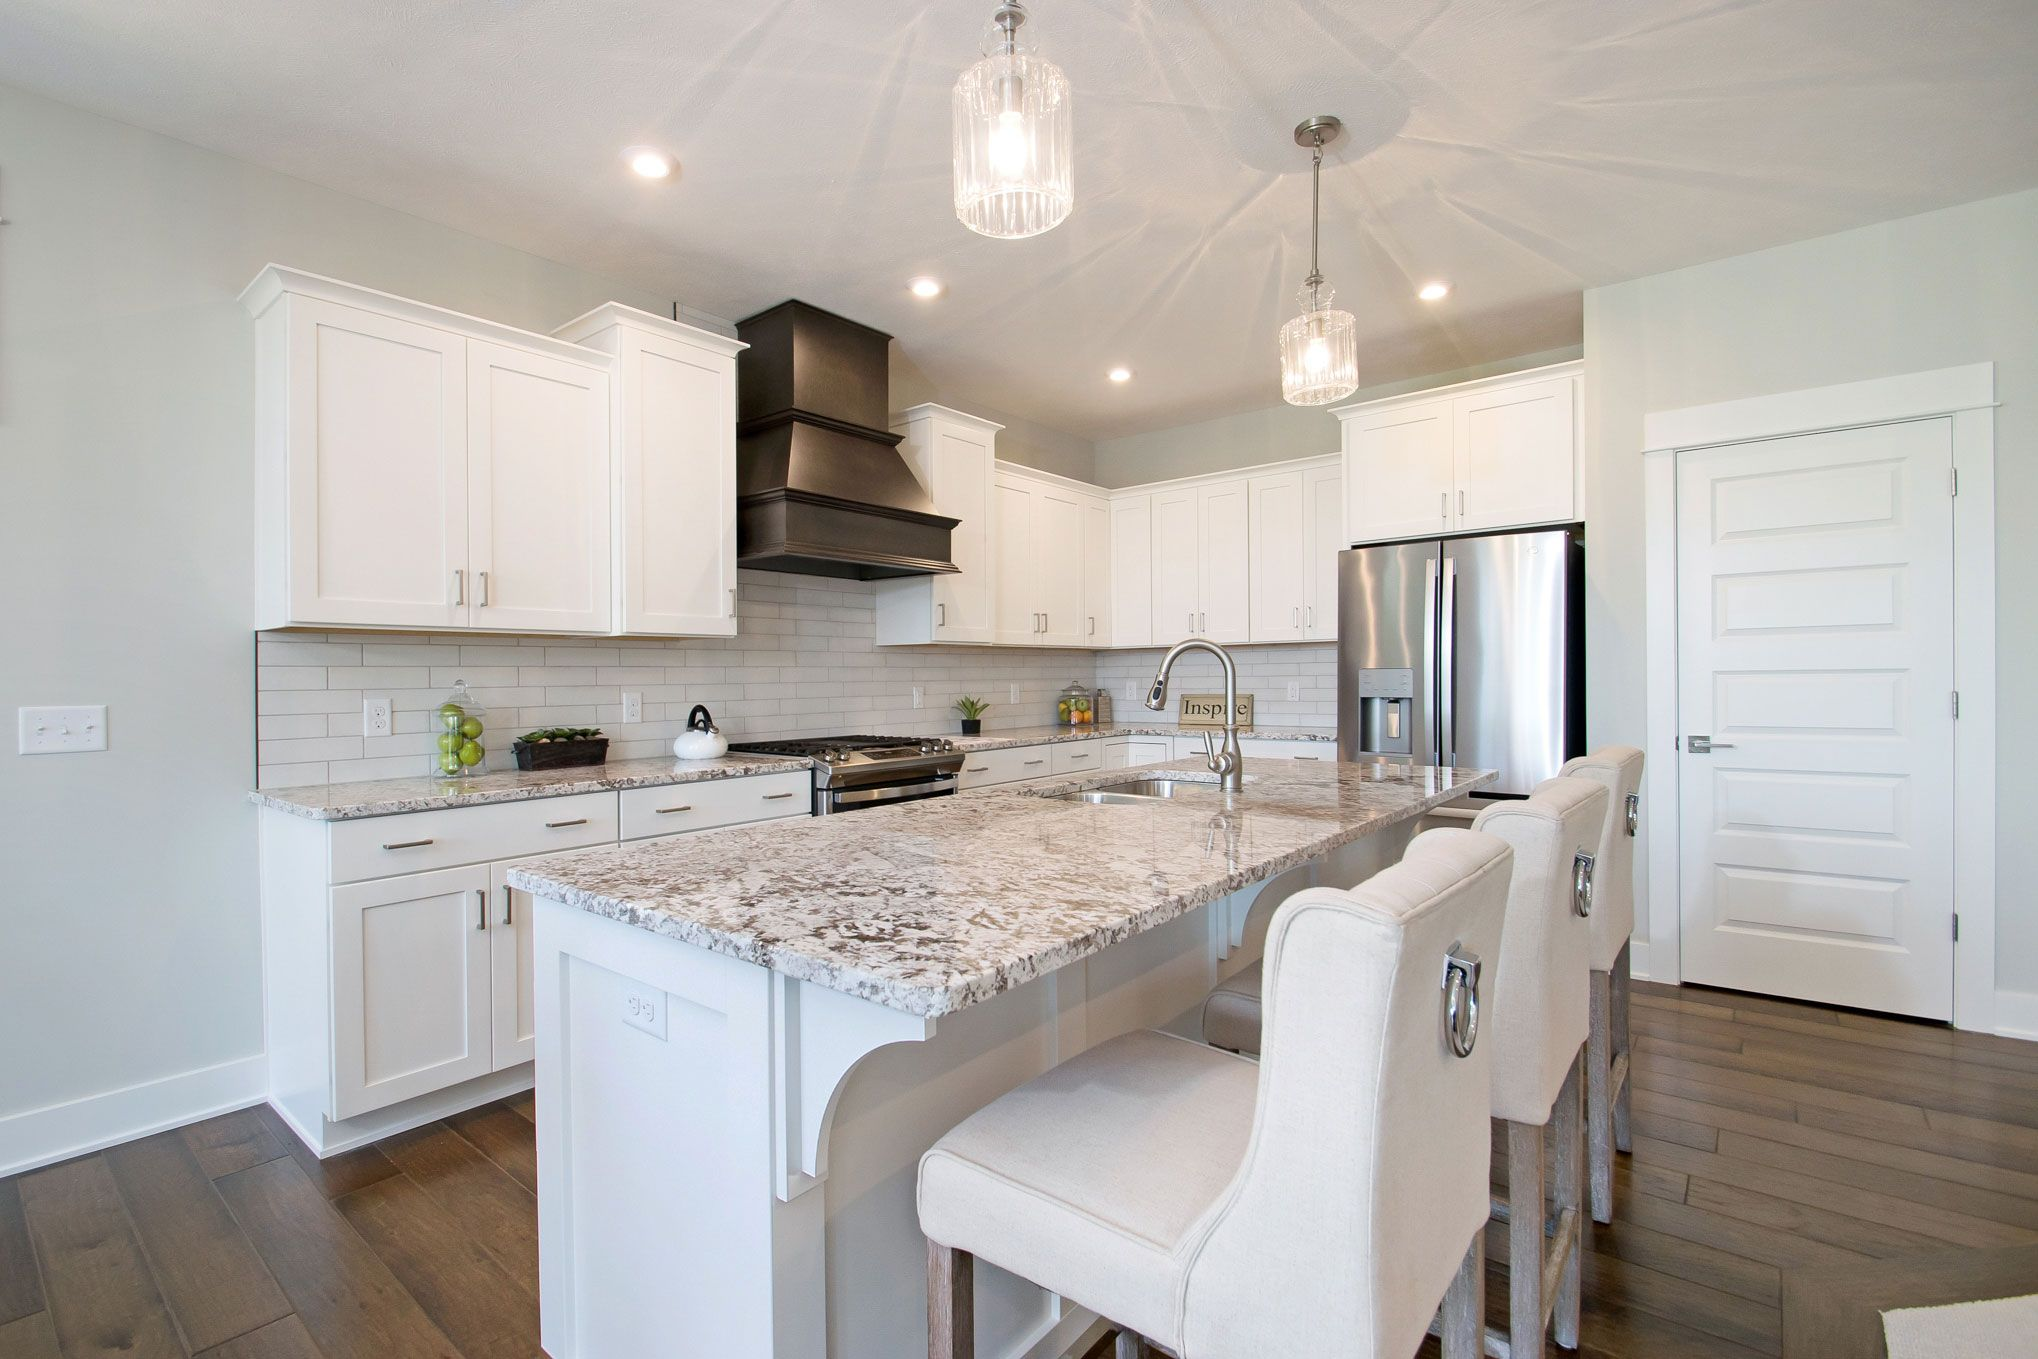 Kitchen featured in The Willow ll By Eastbrook Homes Inc. in Grand Rapids, MI